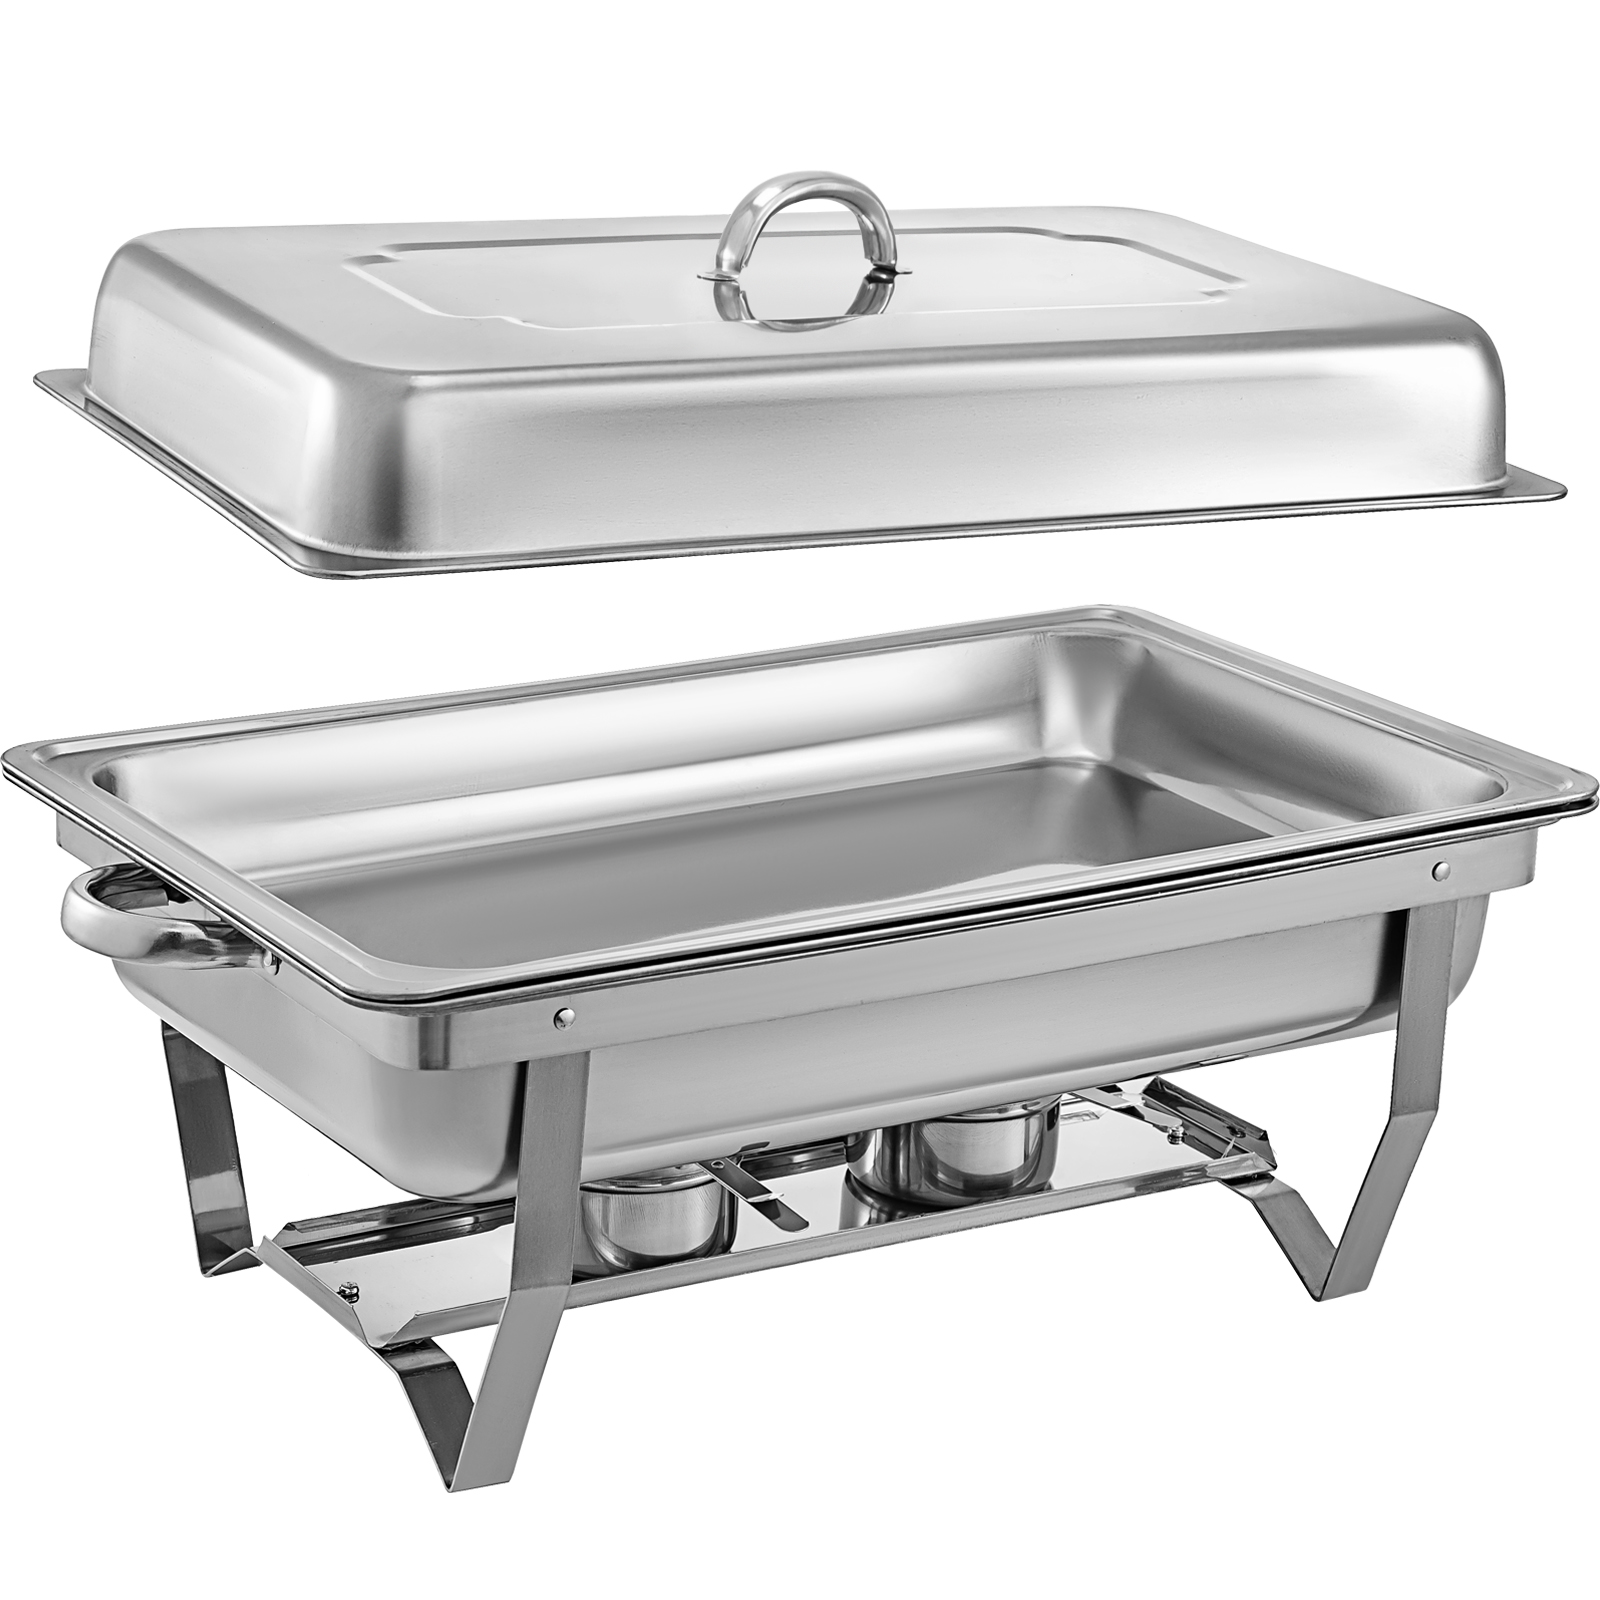 Superb Details About Stainless Steel 9L Chafing Dishes 1 2 1 3 Inserts Chafer Buffet Trays Food Pan Interior Design Ideas Clesiryabchikinfo